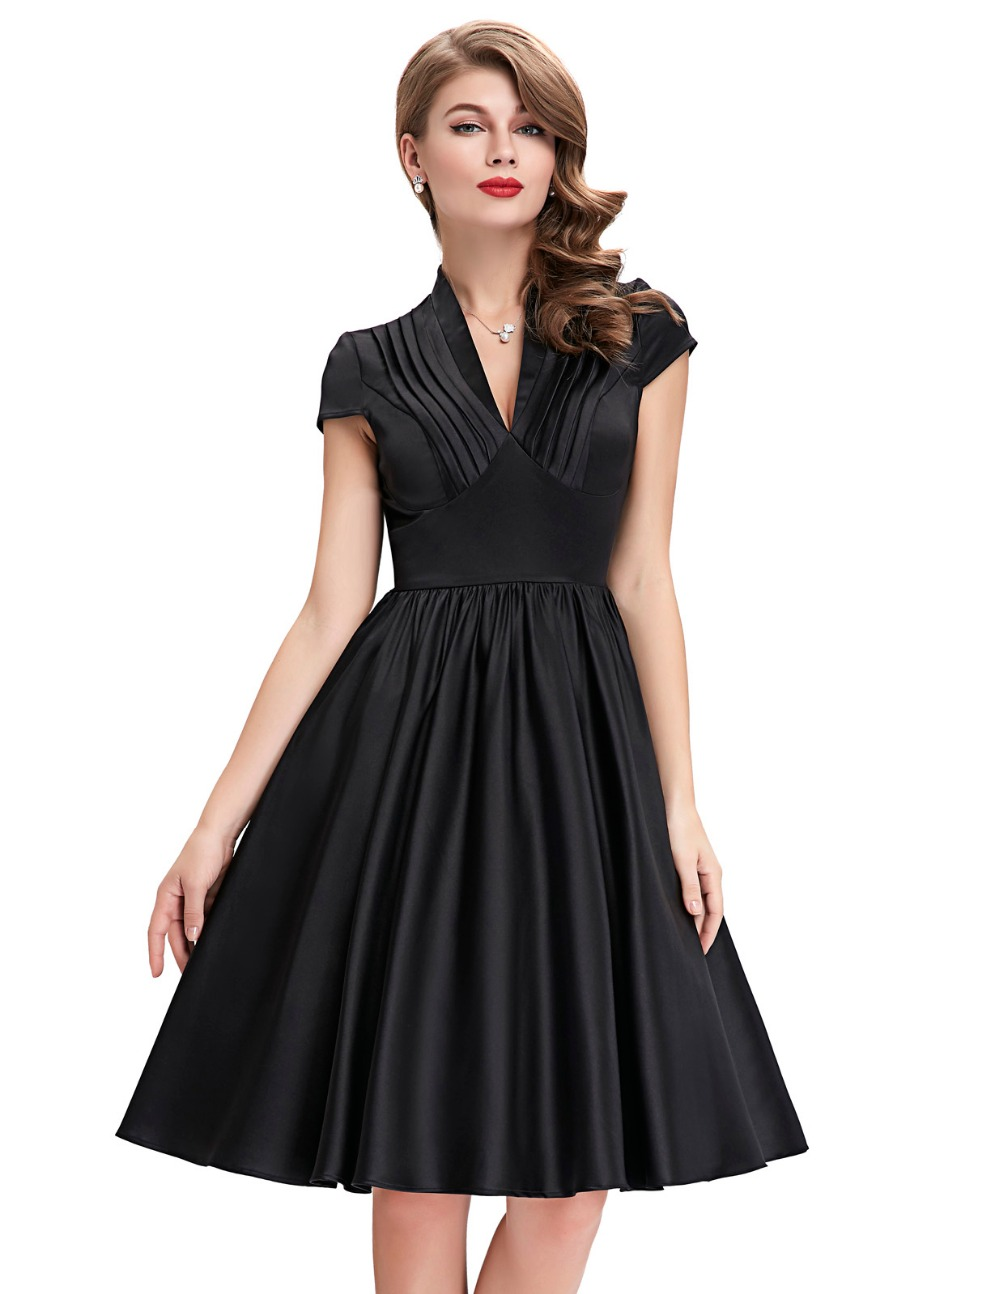 buy 2016 new style black red summer dress plus size women 60s clothing woman. Black Bedroom Furniture Sets. Home Design Ideas